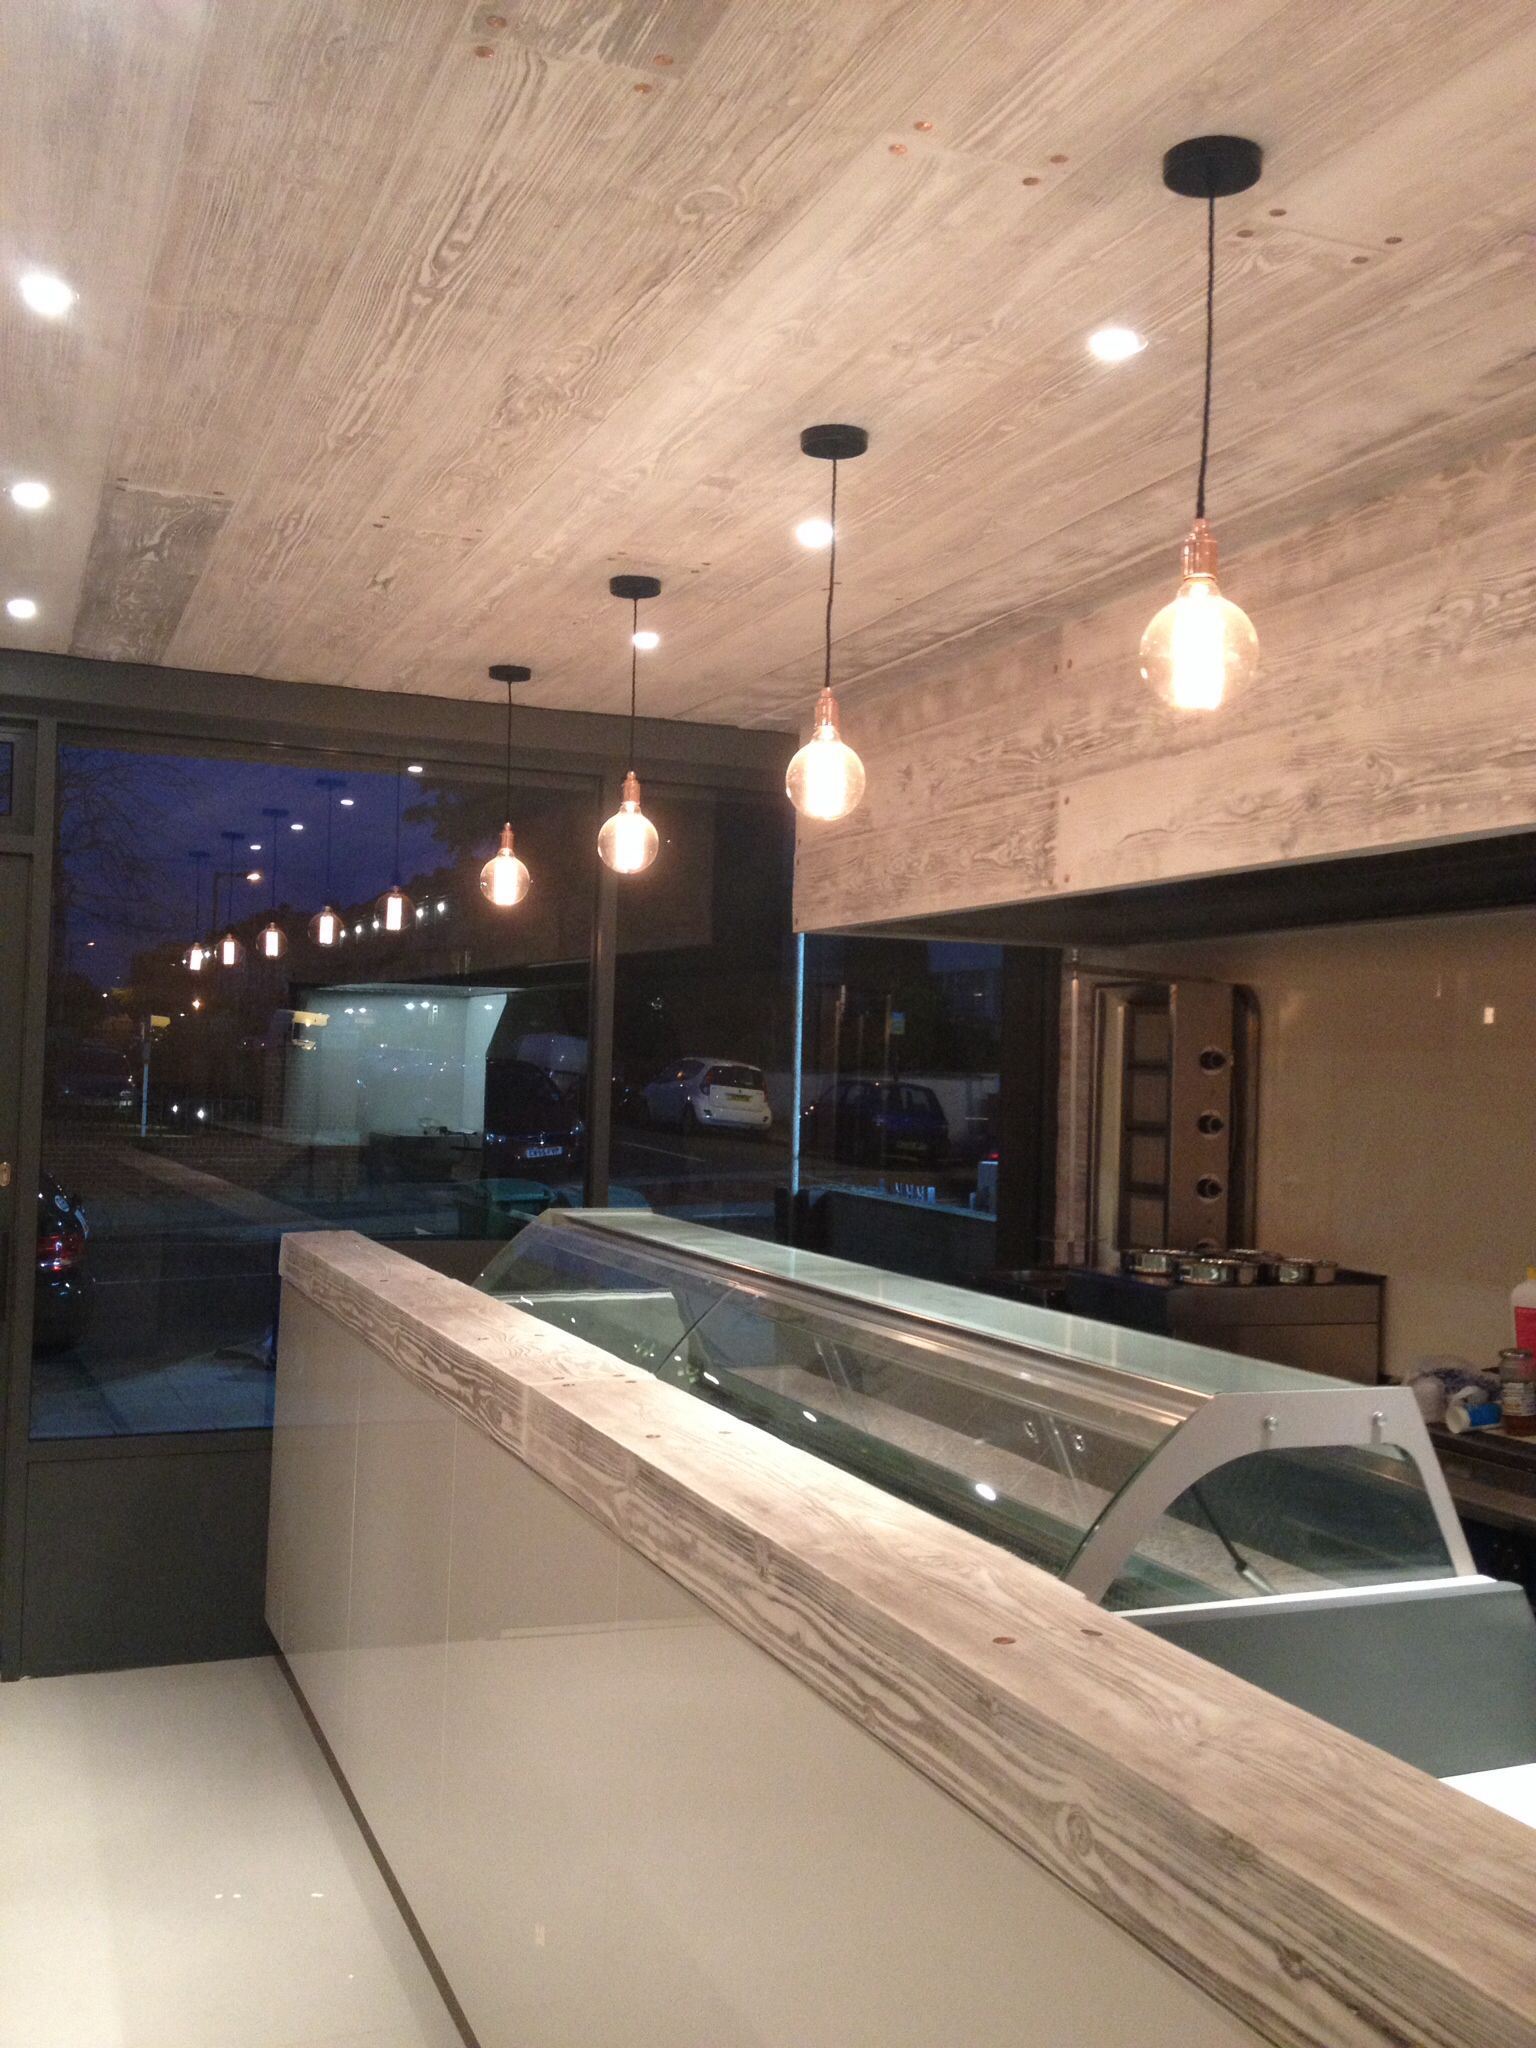 Restaurant counter